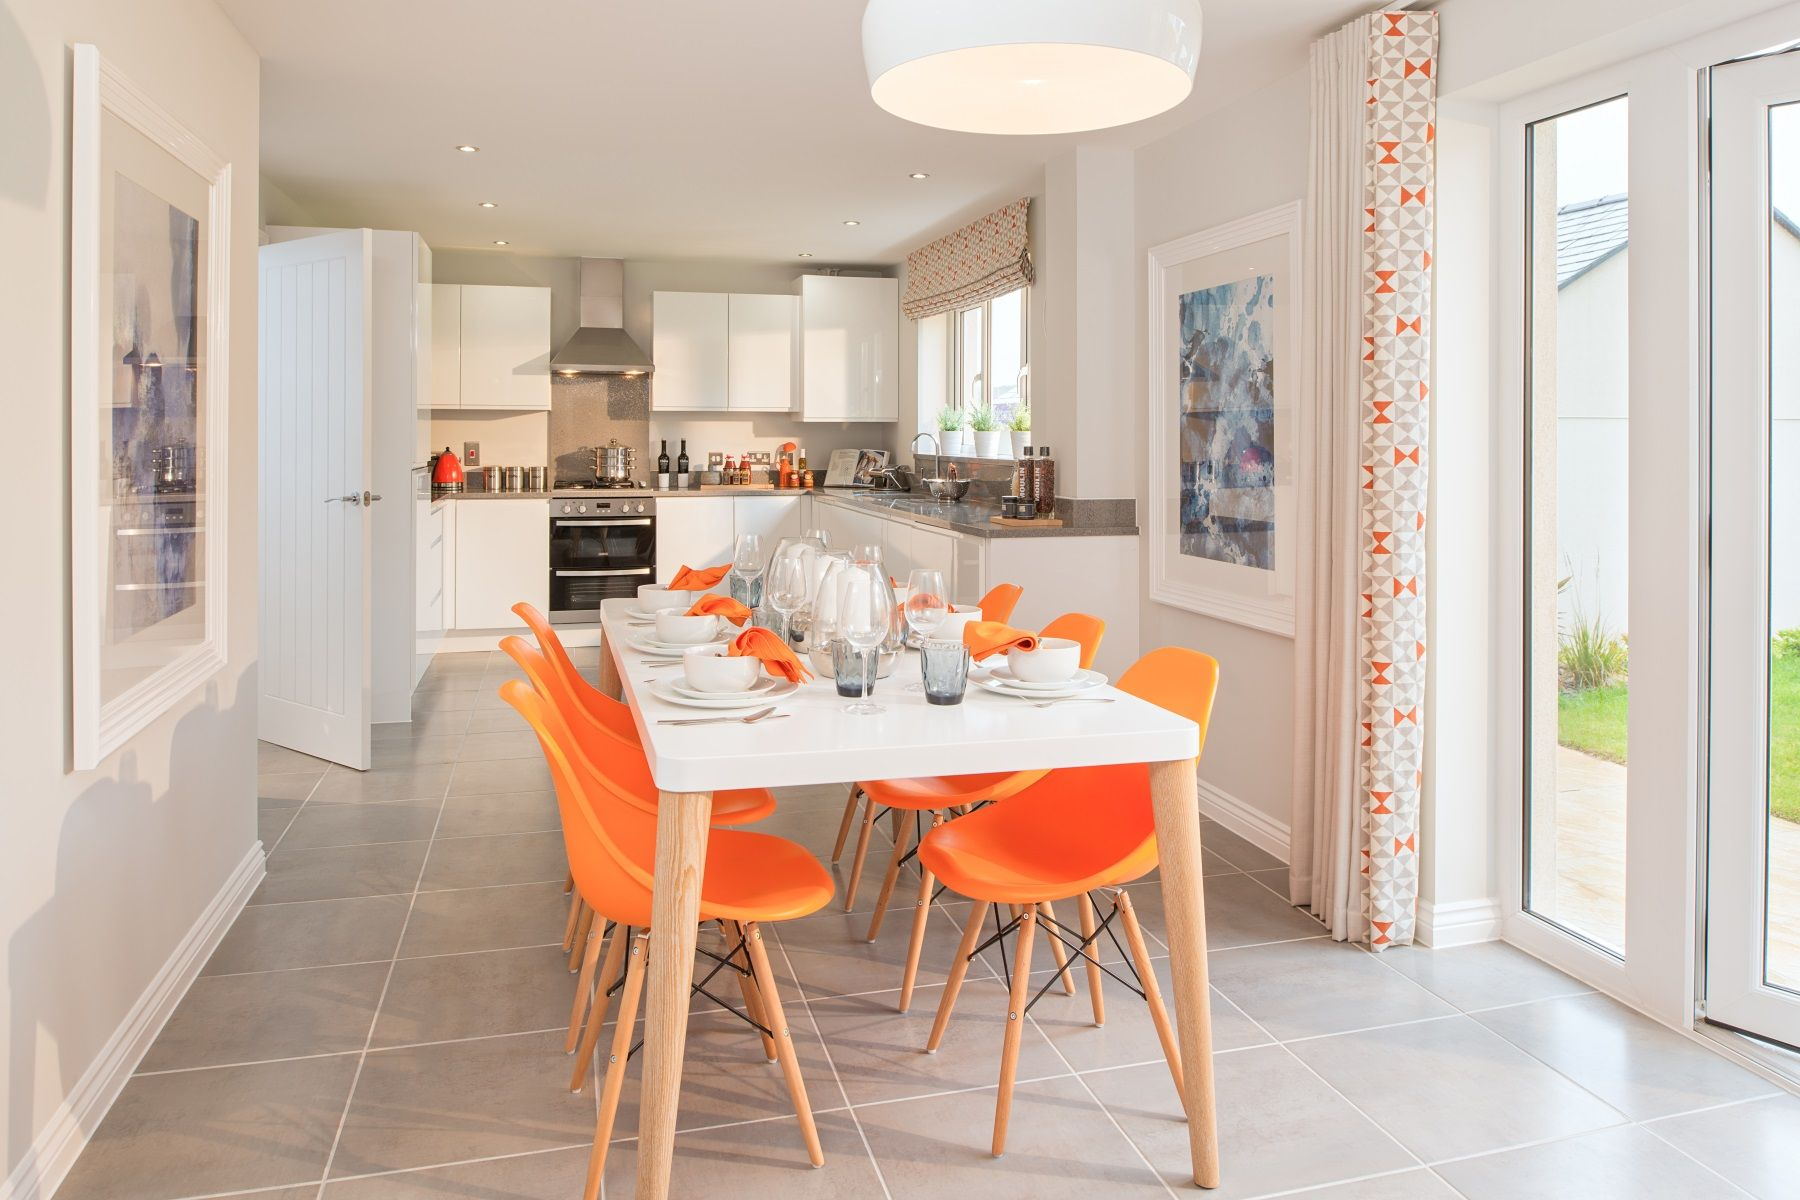 TW Exeter - Rackenford Meadow - Shelford example kitchen 2